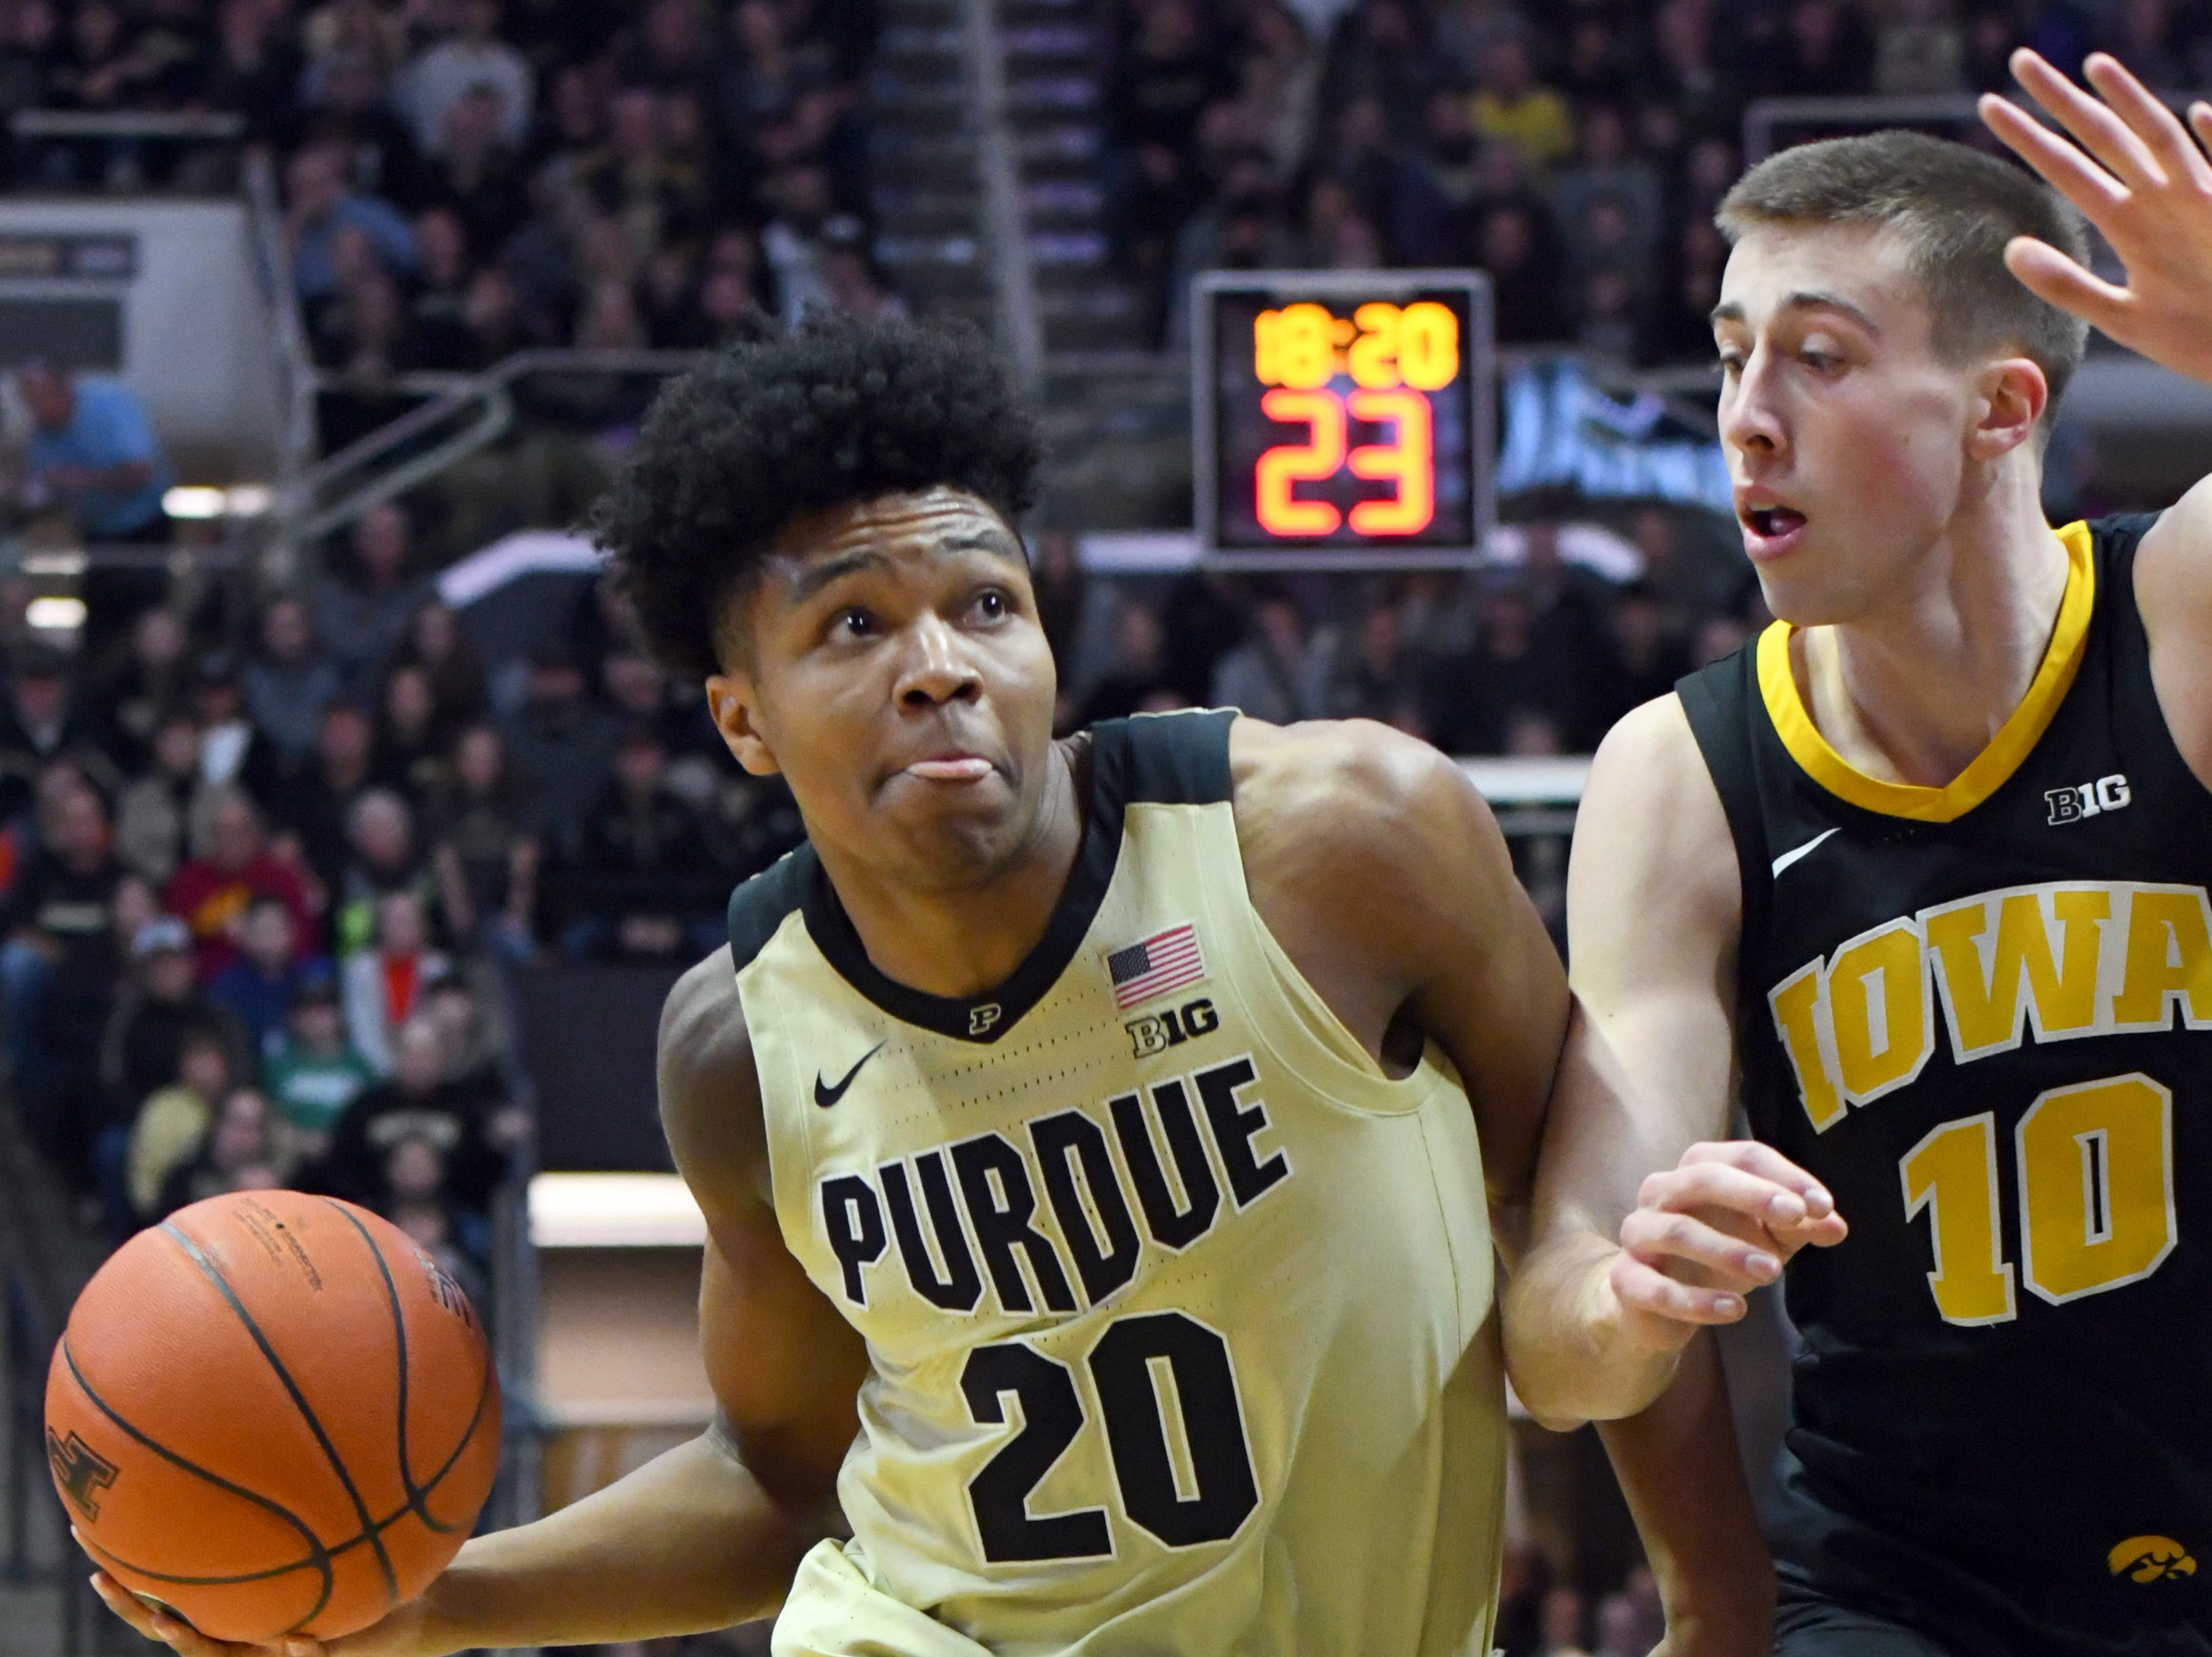 Action from Purdue's win against Iowa in West Lafayette on Thursday January 3, 2019. Purdue defeated the Hawkeyes 86-70. Nojel Eastern